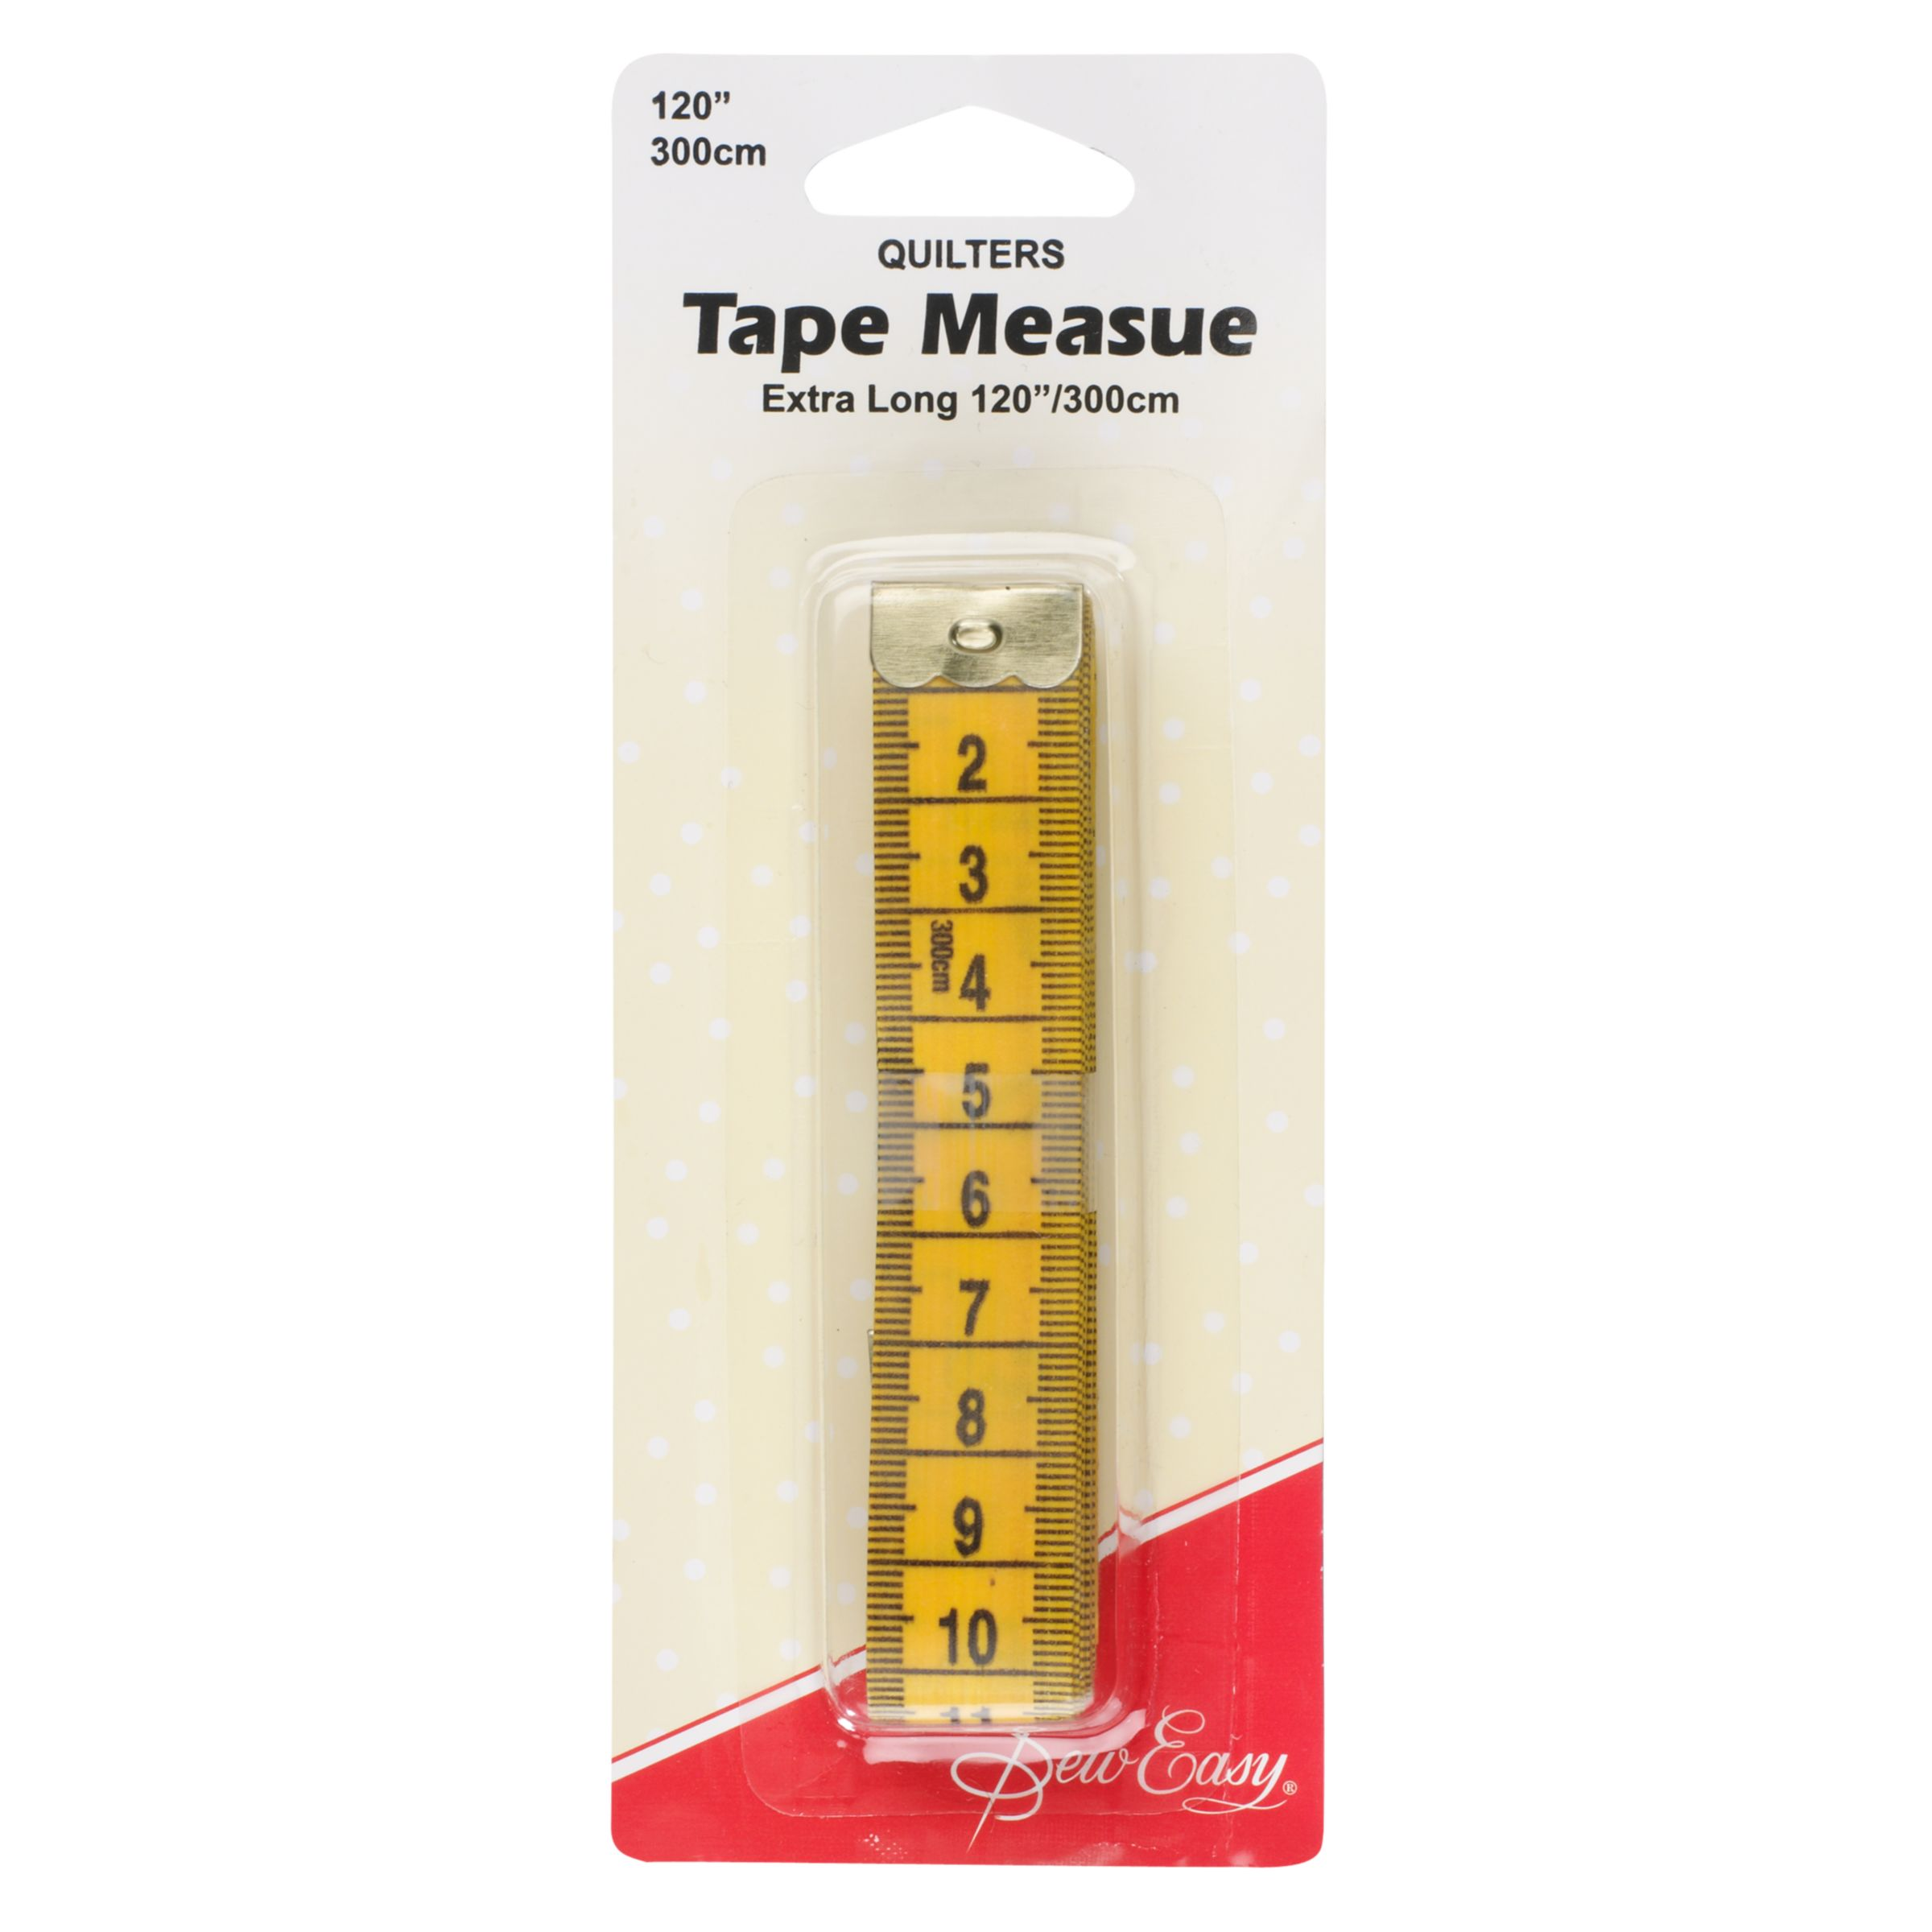 Sew Easy Sew Easy Quilter's Tape Measure